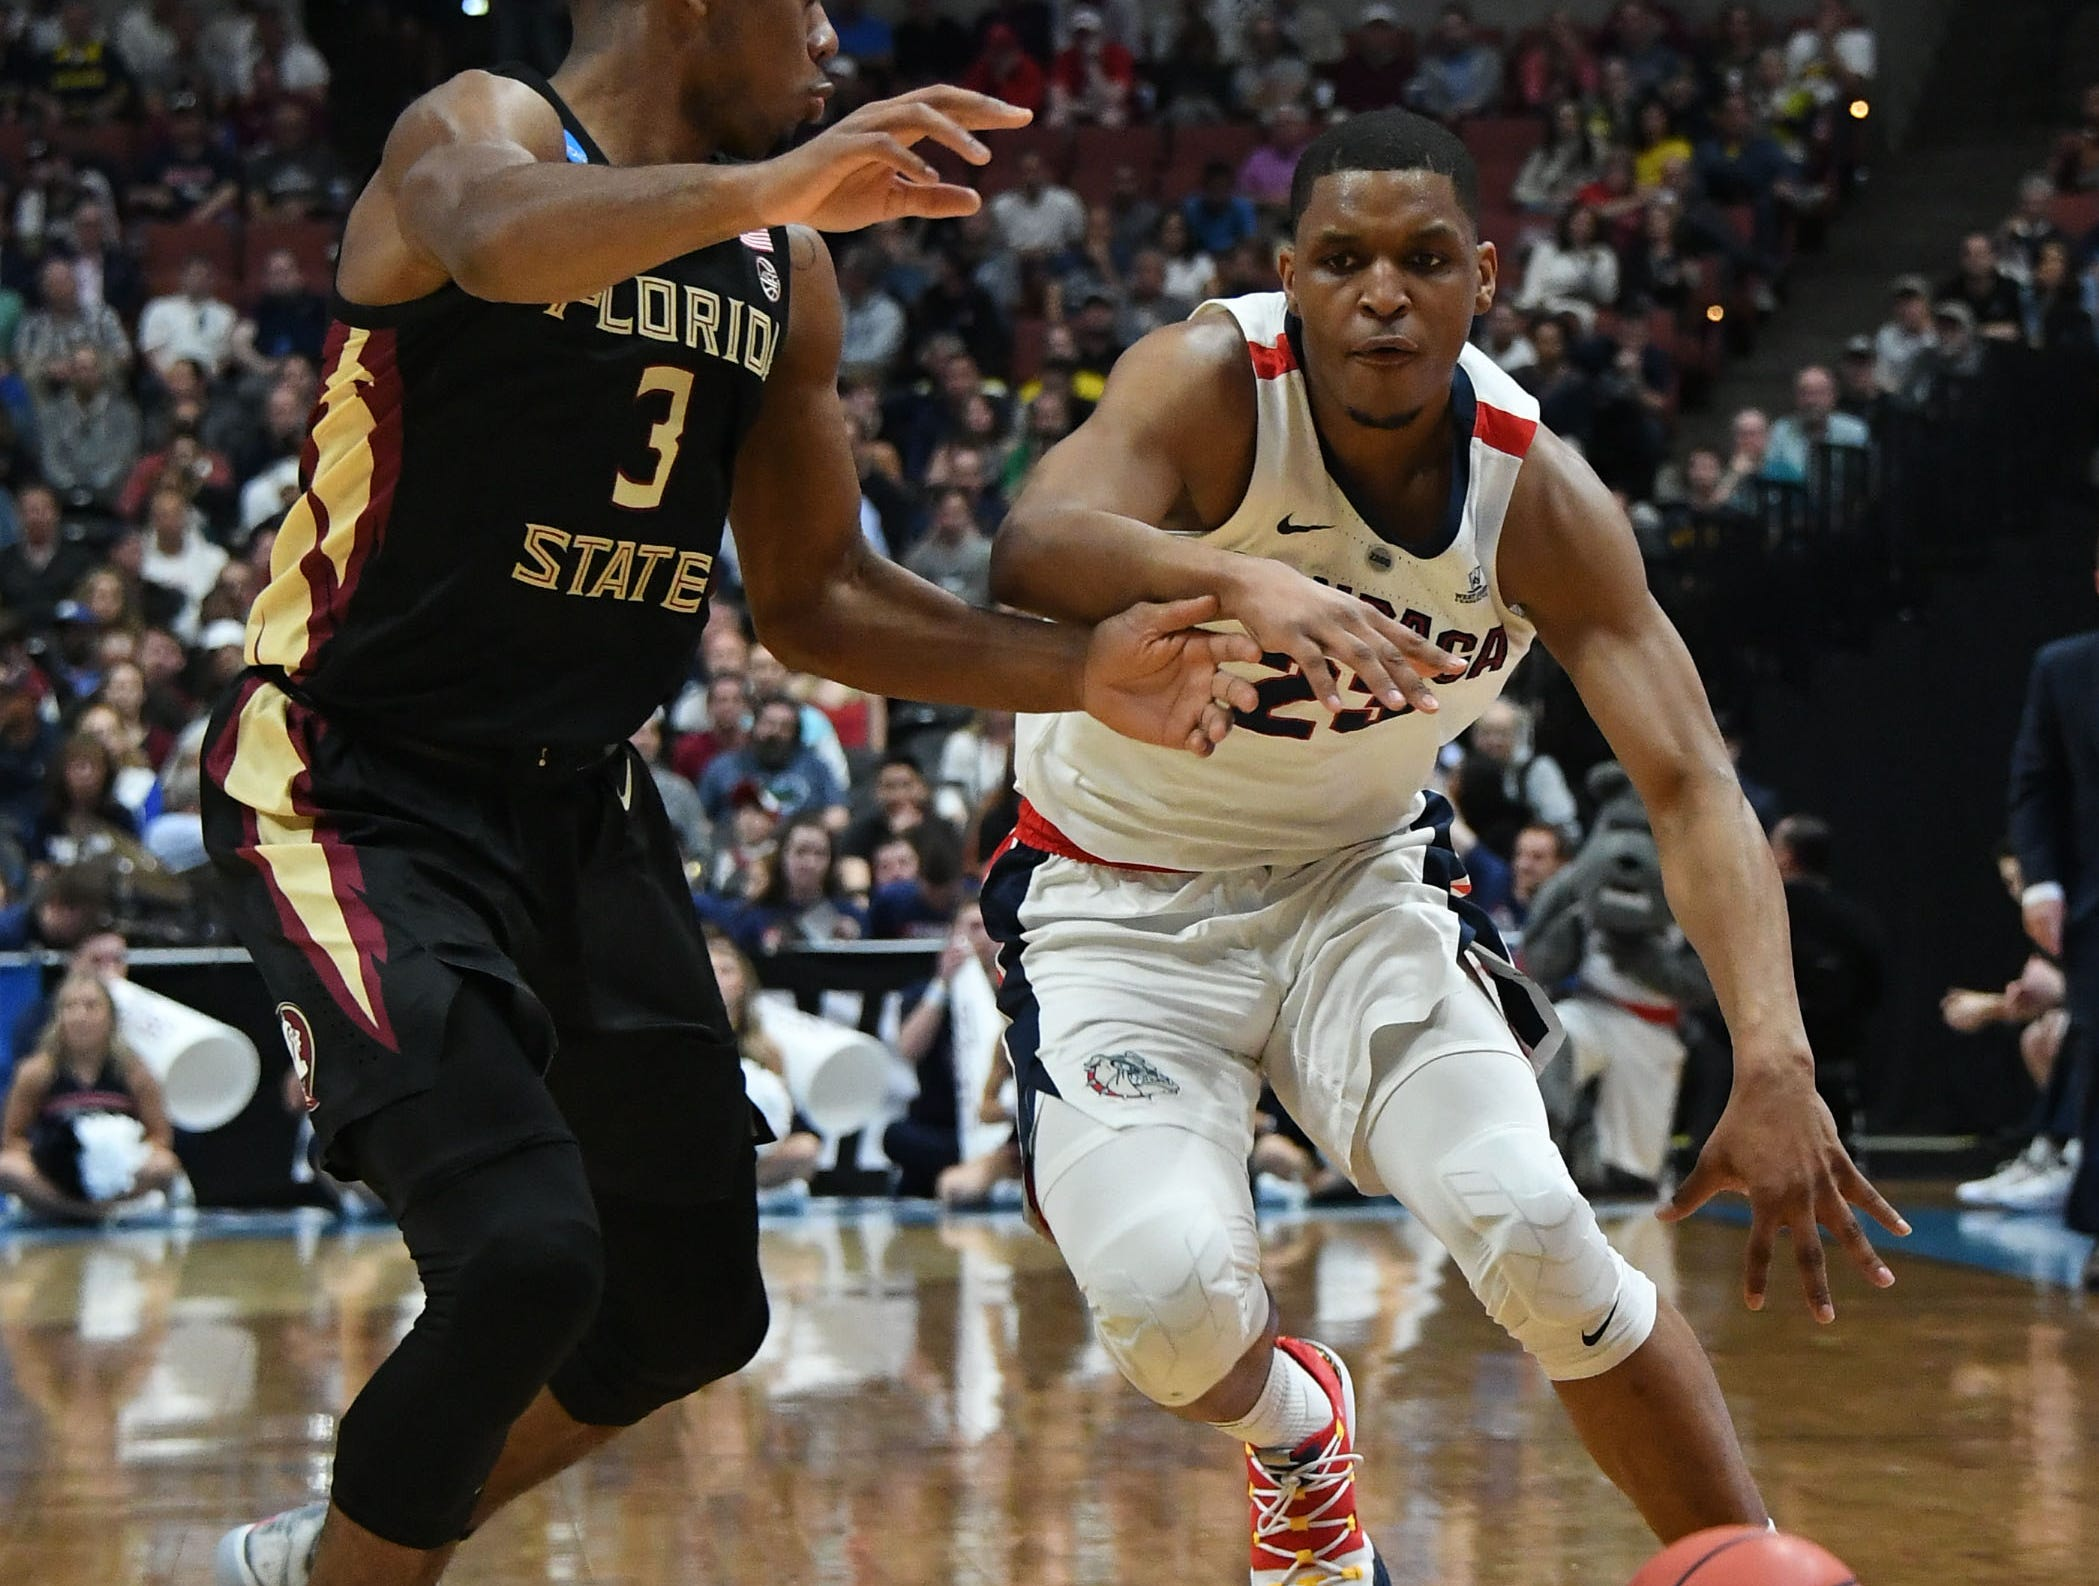 March 28, 2019; Anaheim, CA, USA; Gonzaga Bulldogs guard Zach Norvell Jr. (23) moves the ball against Florida State Seminoles guard Trent Forrest (3) during the first half in the semifinals of the west regional of the 2019 NCAA Tournament at Honda Center. Mandatory Credit: Richard Mackson-USA TODAY Sports